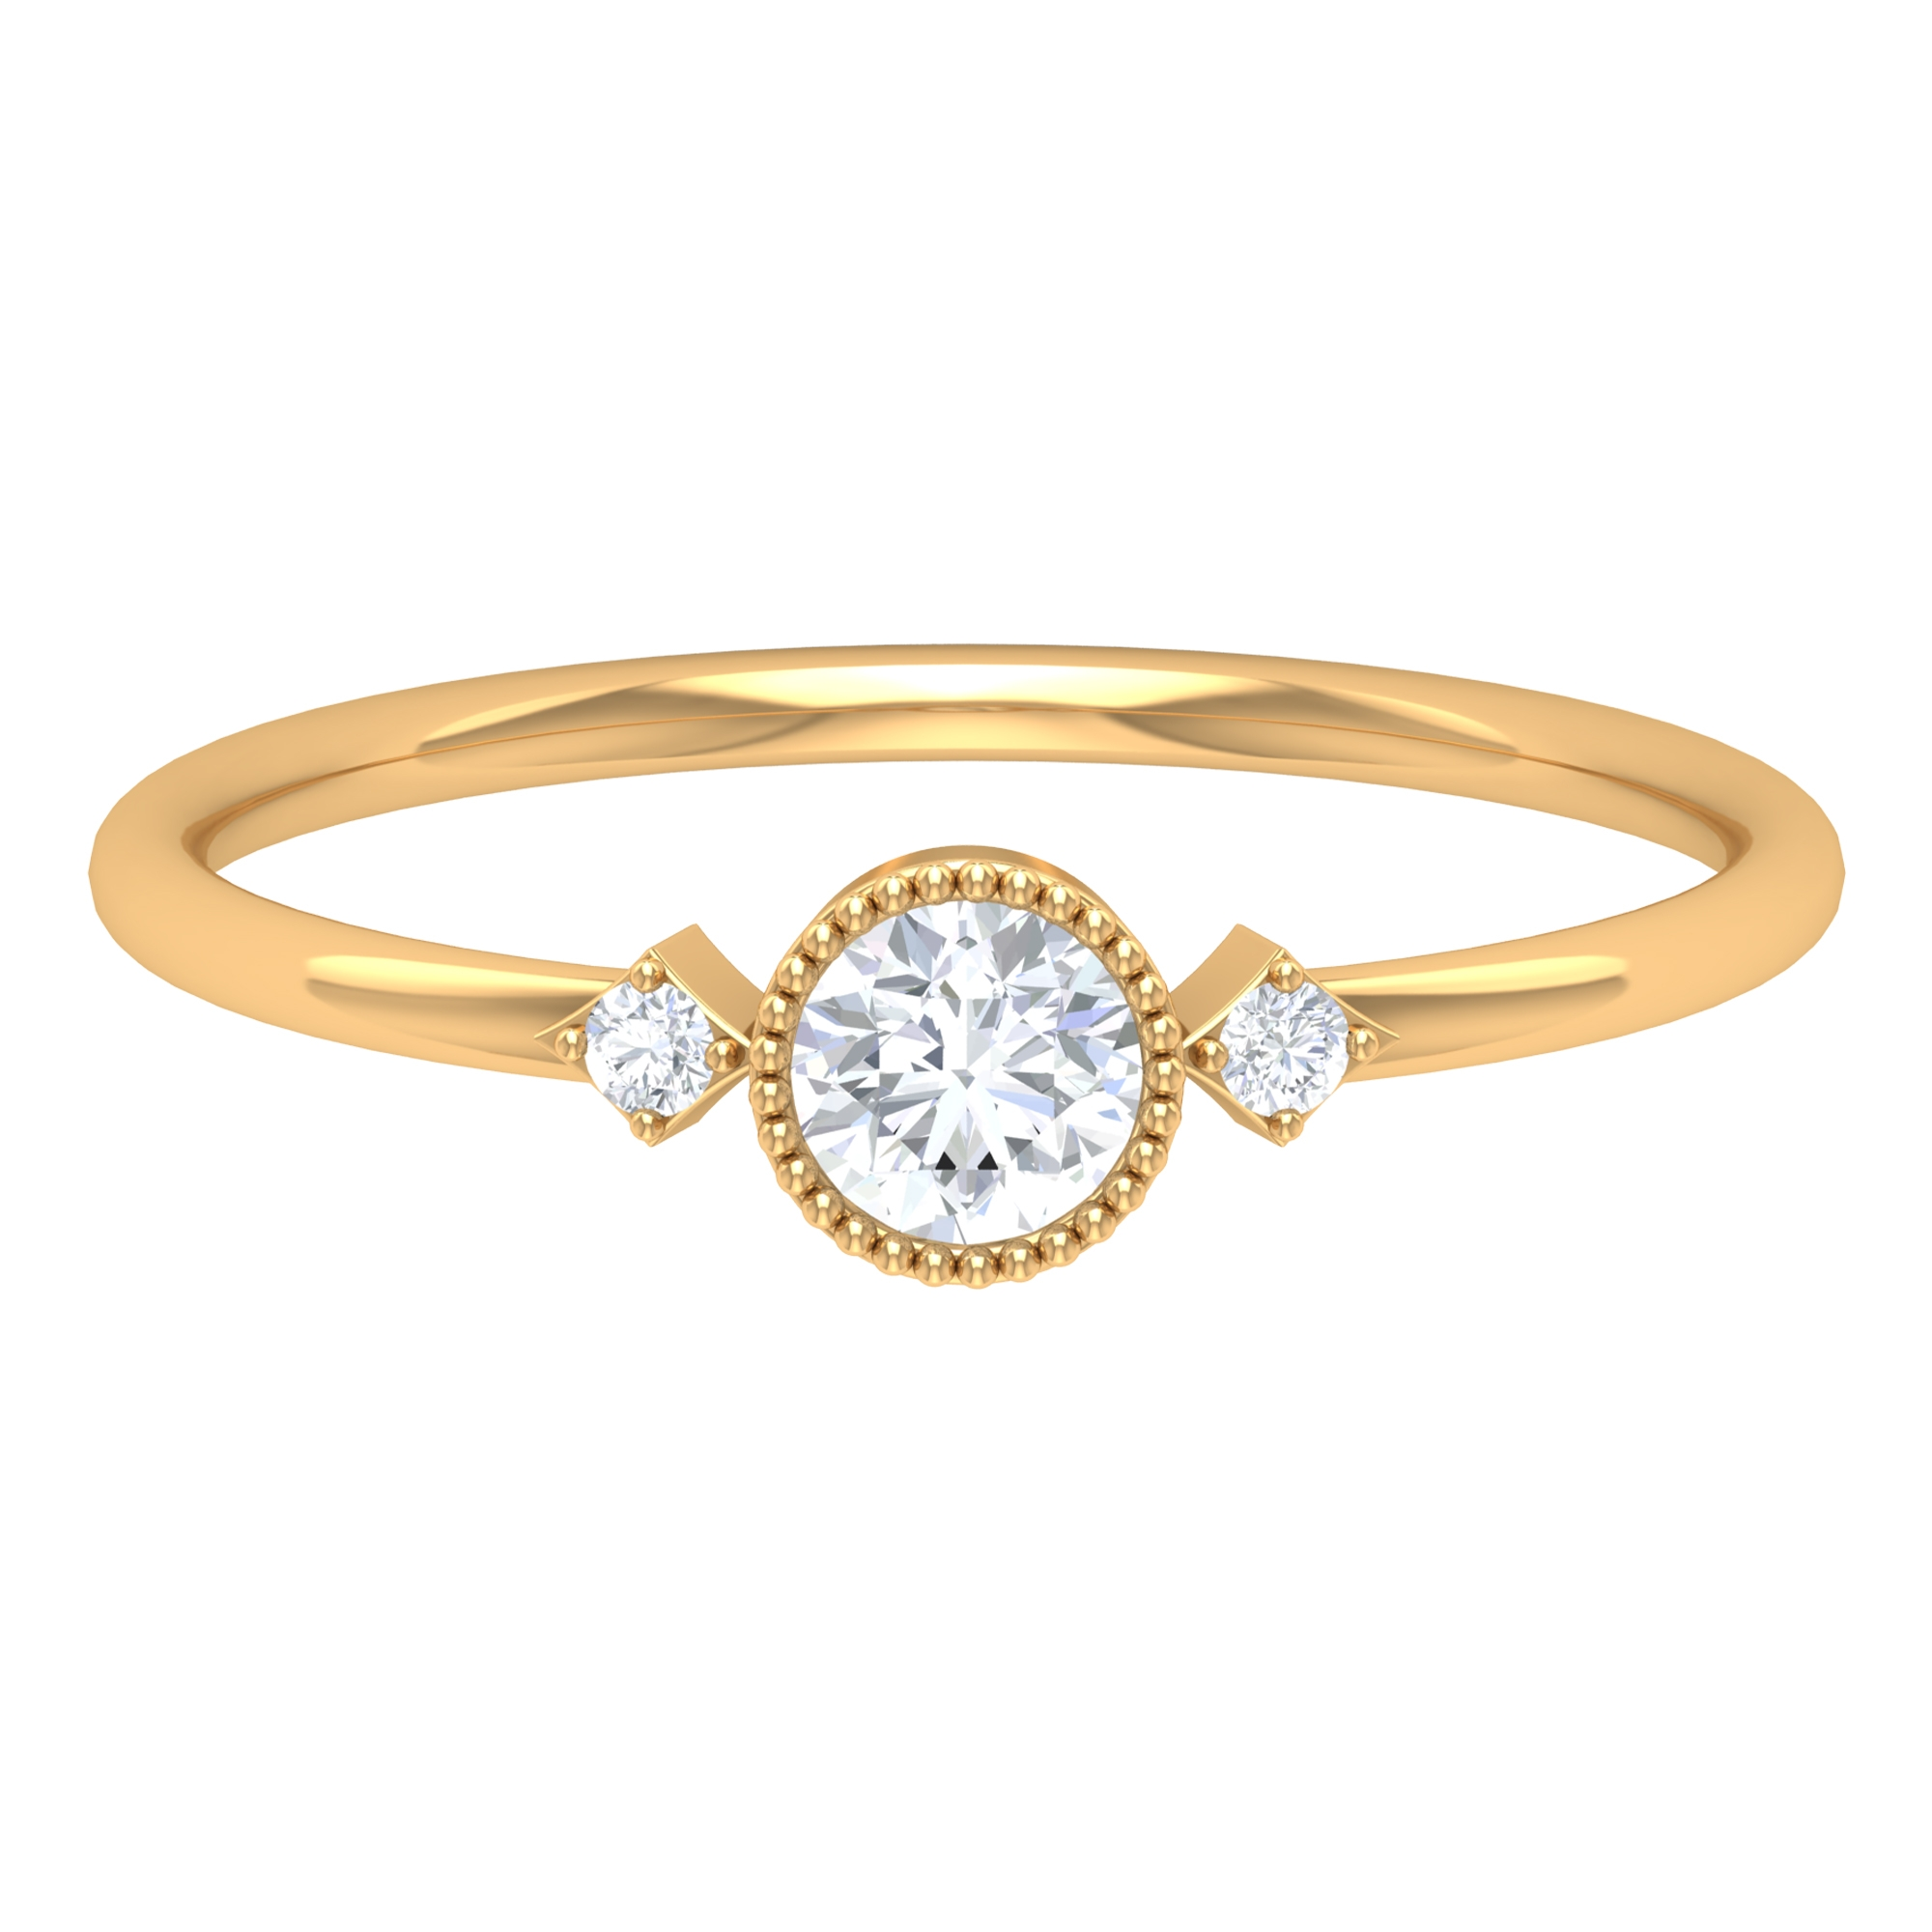 1/4 CT Solitaire Diamond Ring in Beaded Bezel Setting